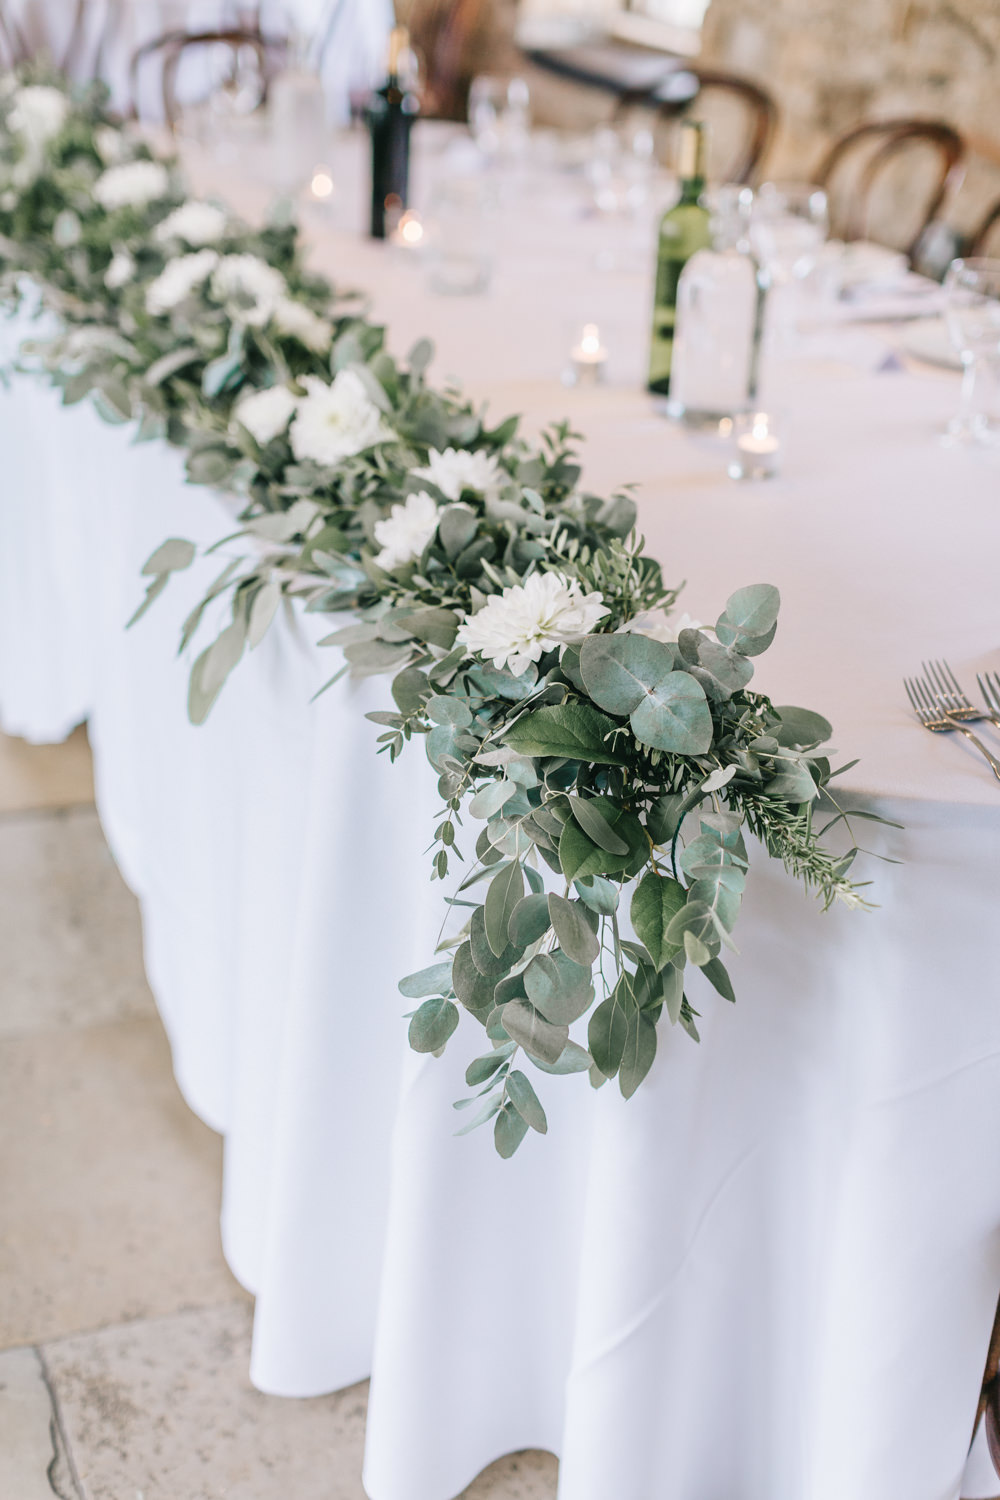 Table Flowers Swag Garland White Greenery Foliage Sweet Peas Fern Healey Barn Wedding Amy Lou Photography